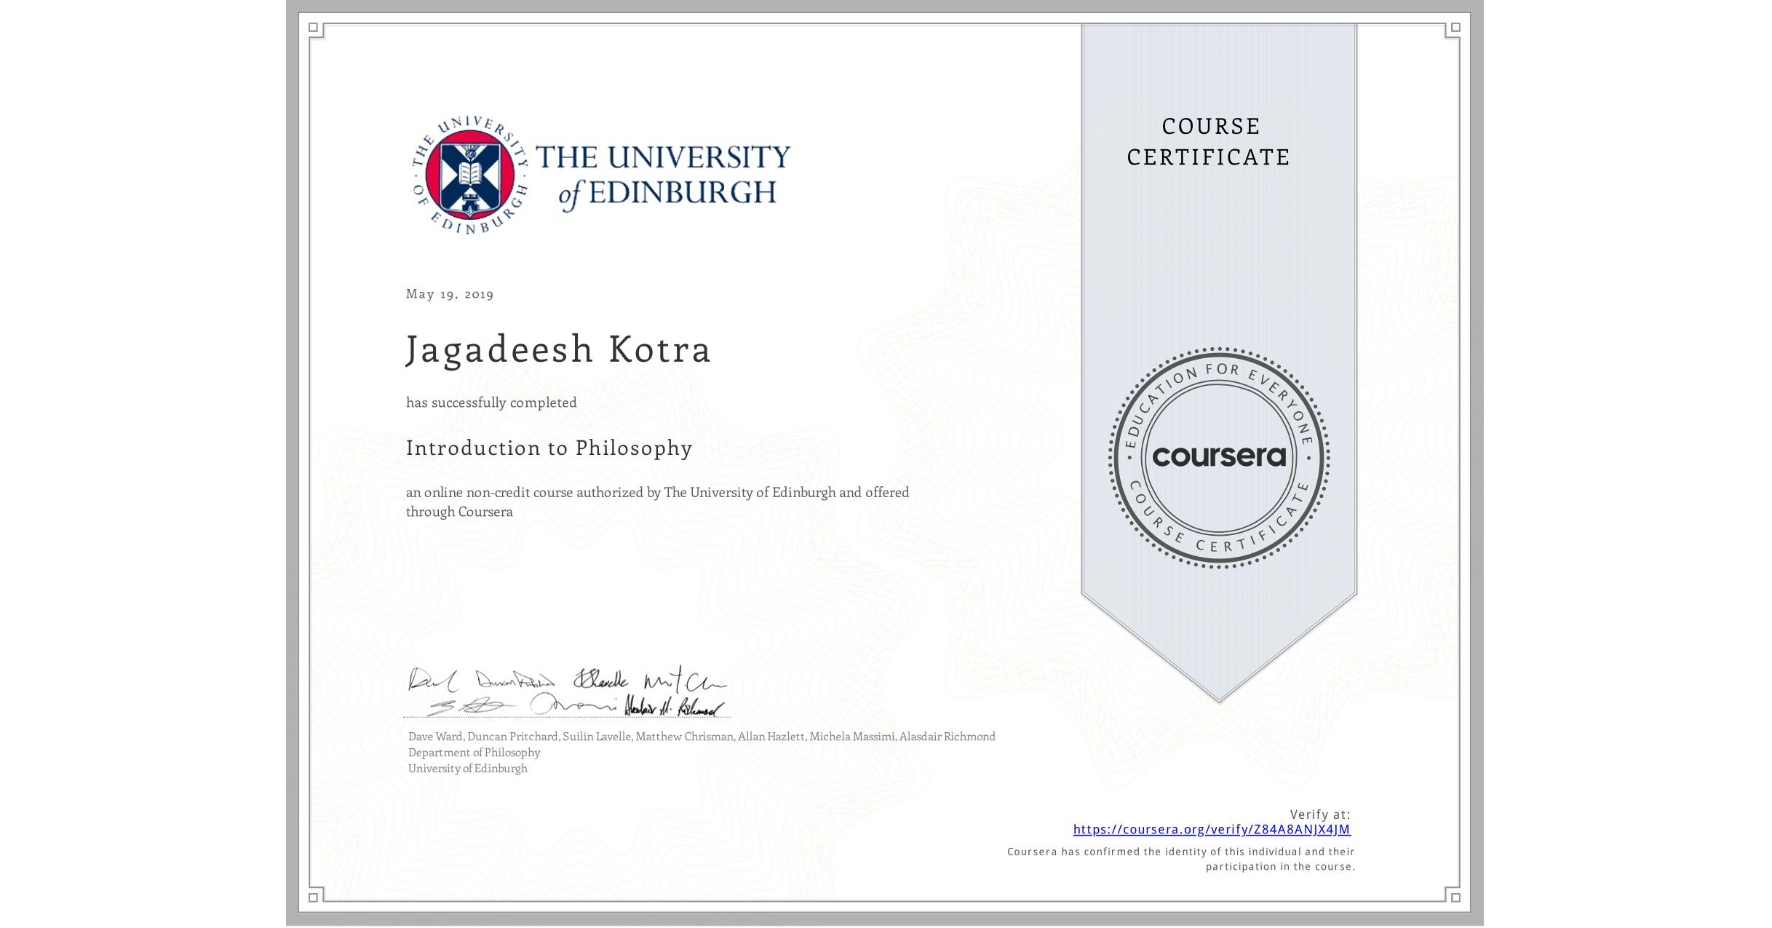 View certificate for Jagadeesh Kotra, Introduction to Philosophy, an online non-credit course authorized by The University of Edinburgh and offered through Coursera